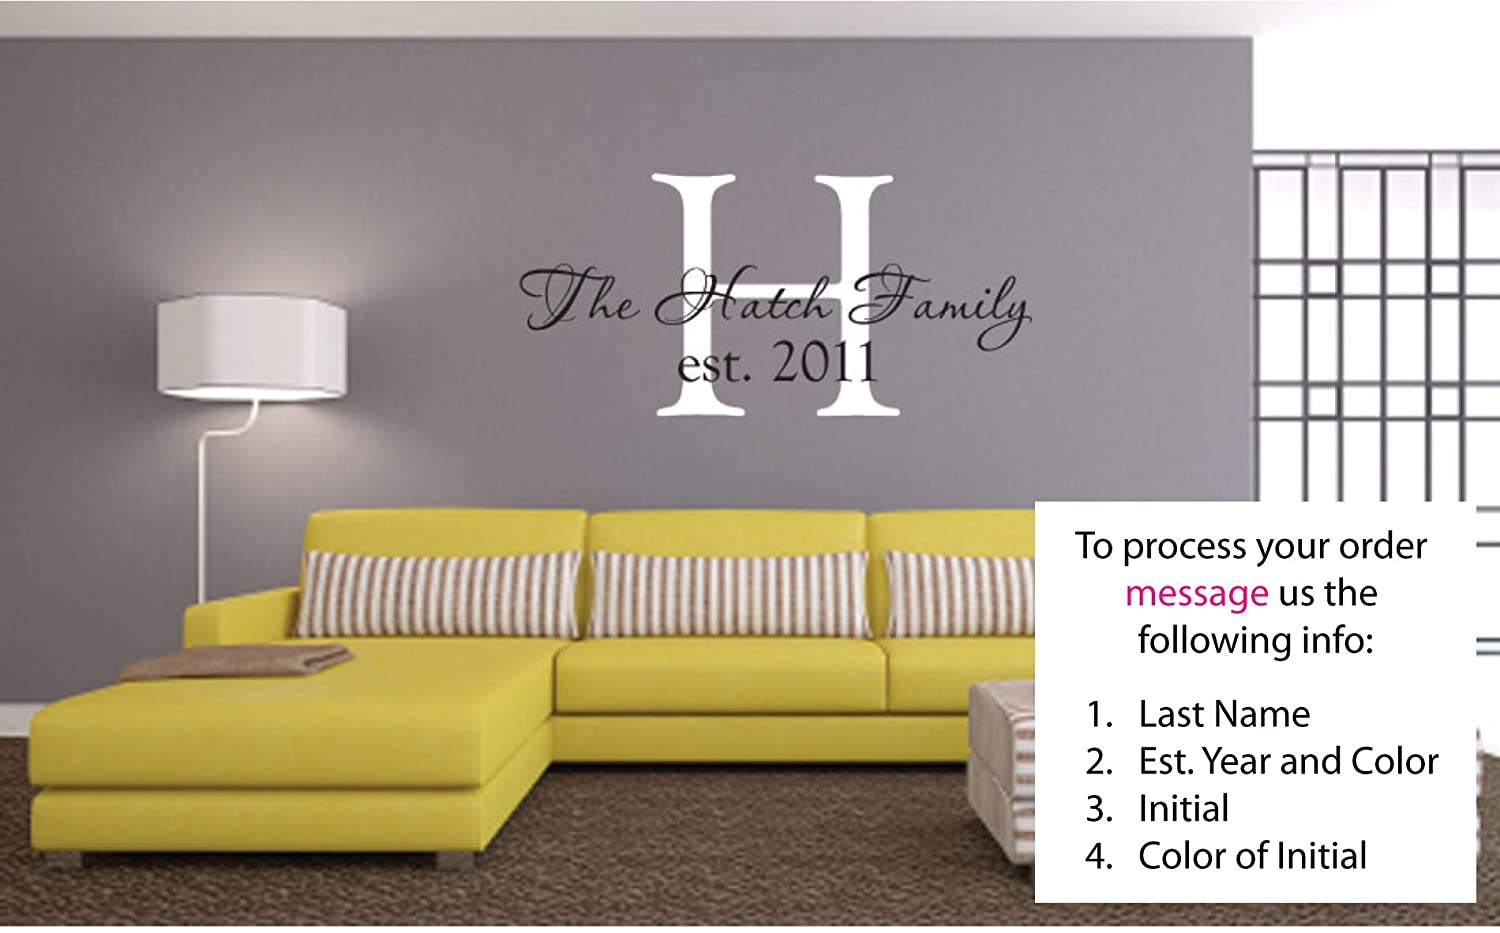 Amazoncom Personalized Last Name And Est Date Vinyl Wall Art - Custom vinyl wall decals saying